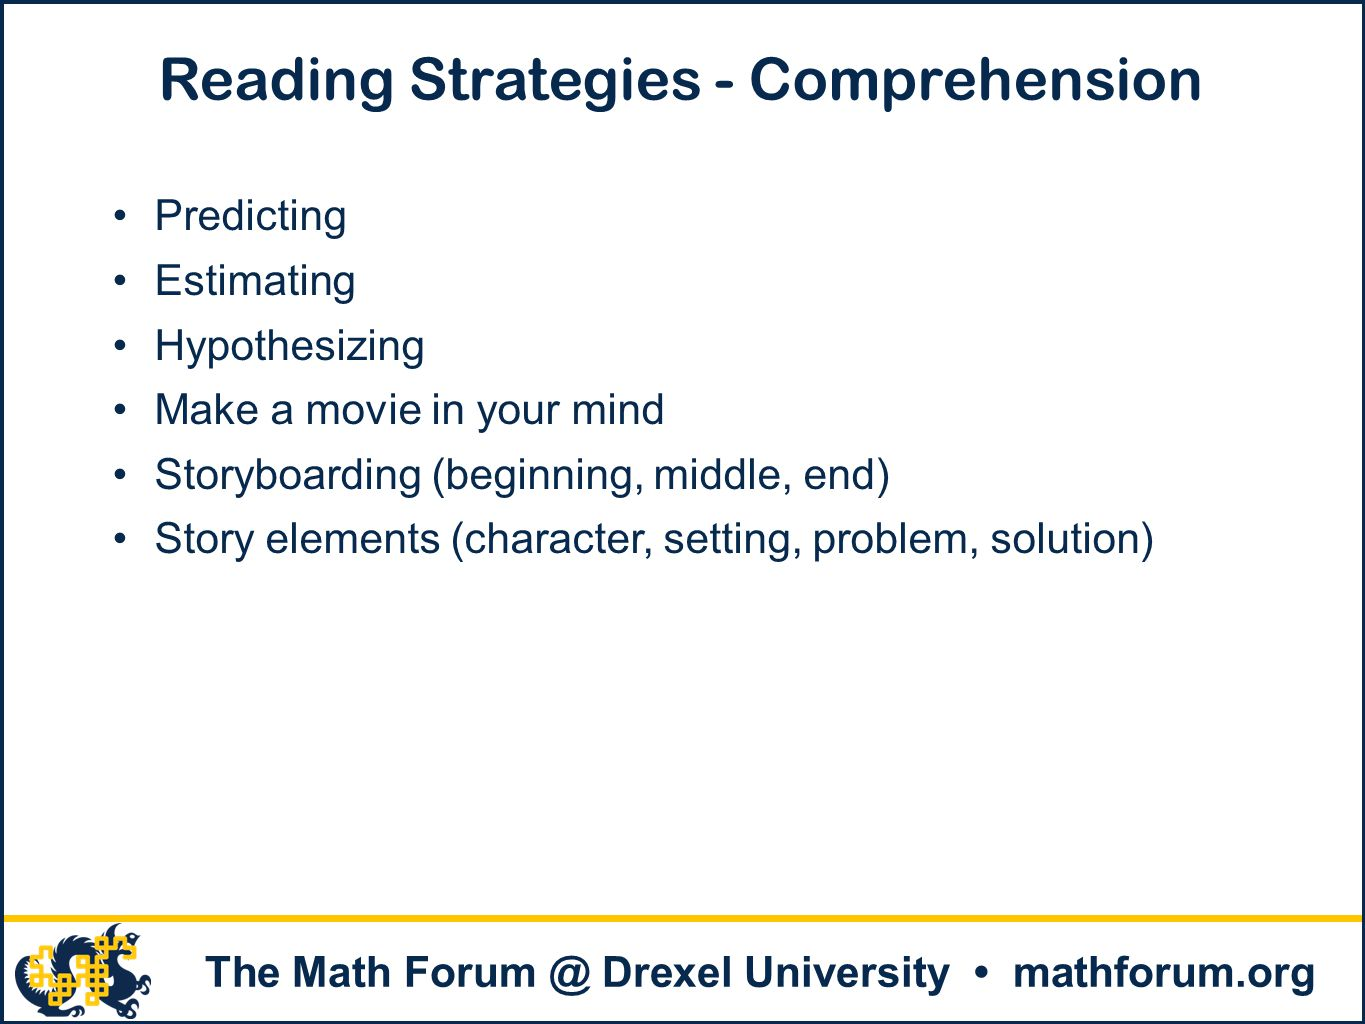 Reading Strategies - Comprehension